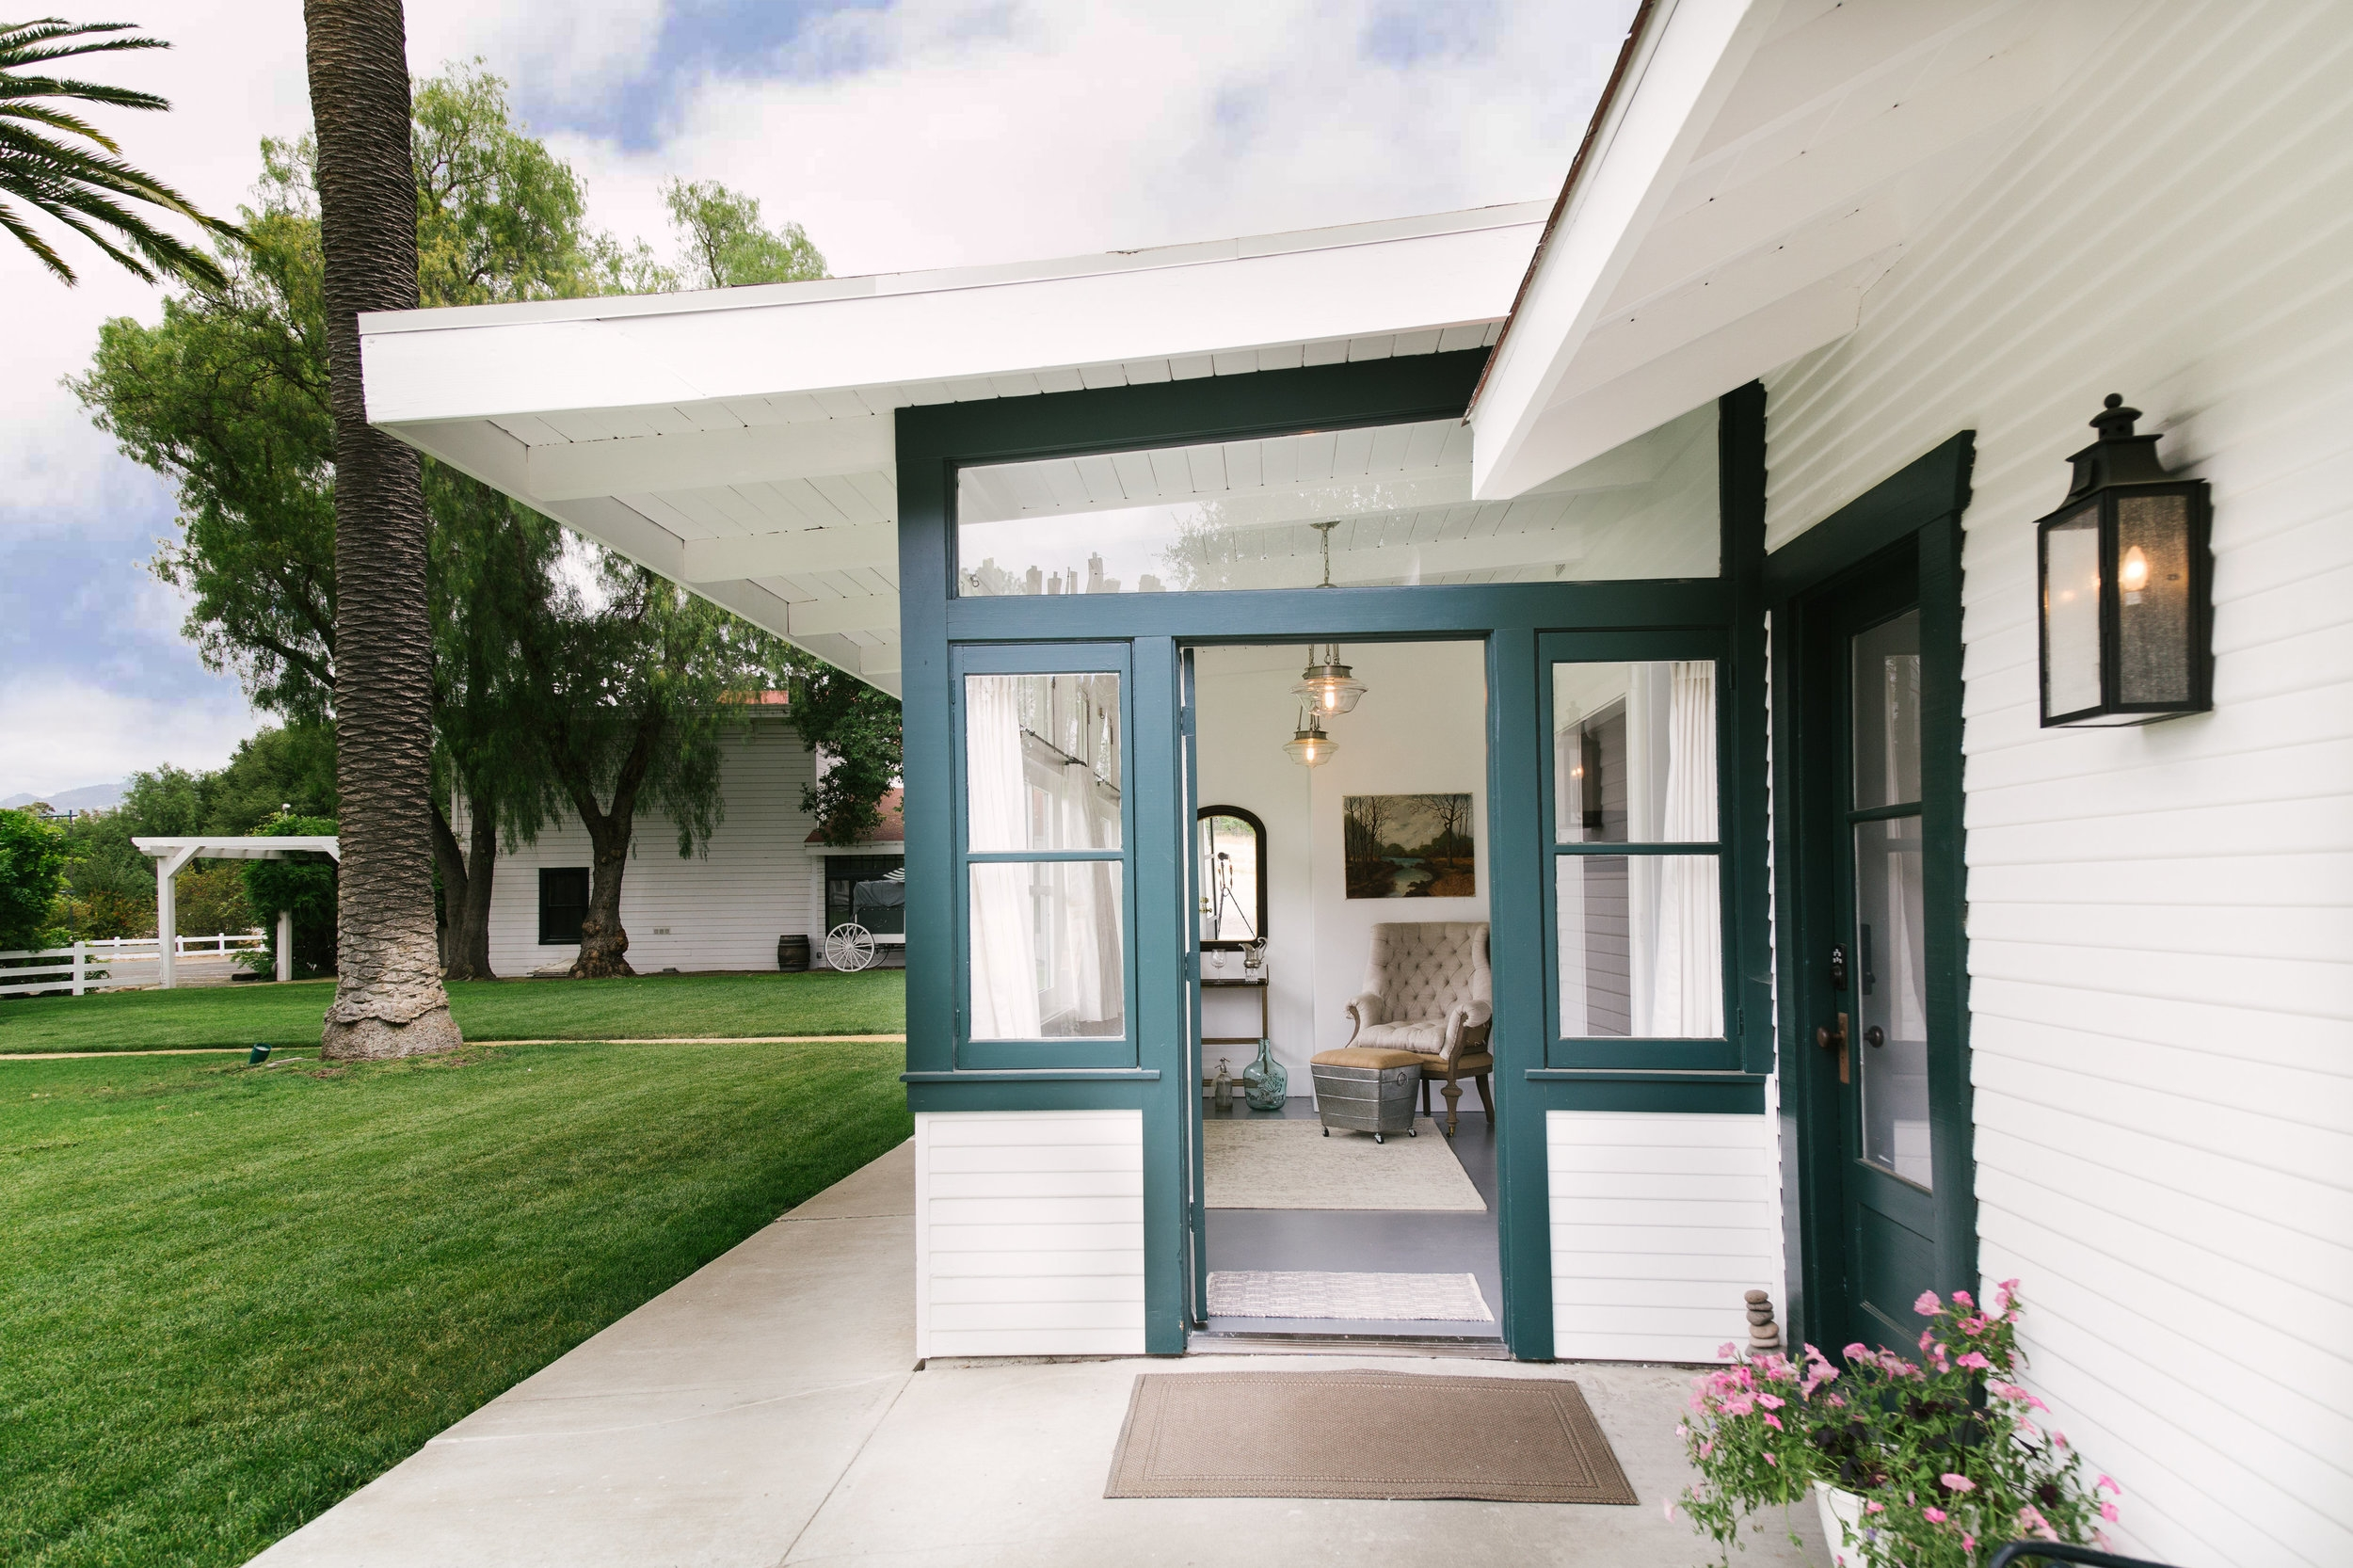 The West Cottages 1 & 2 - 6 bedrooms, 4 bathrooms, accommodates 12